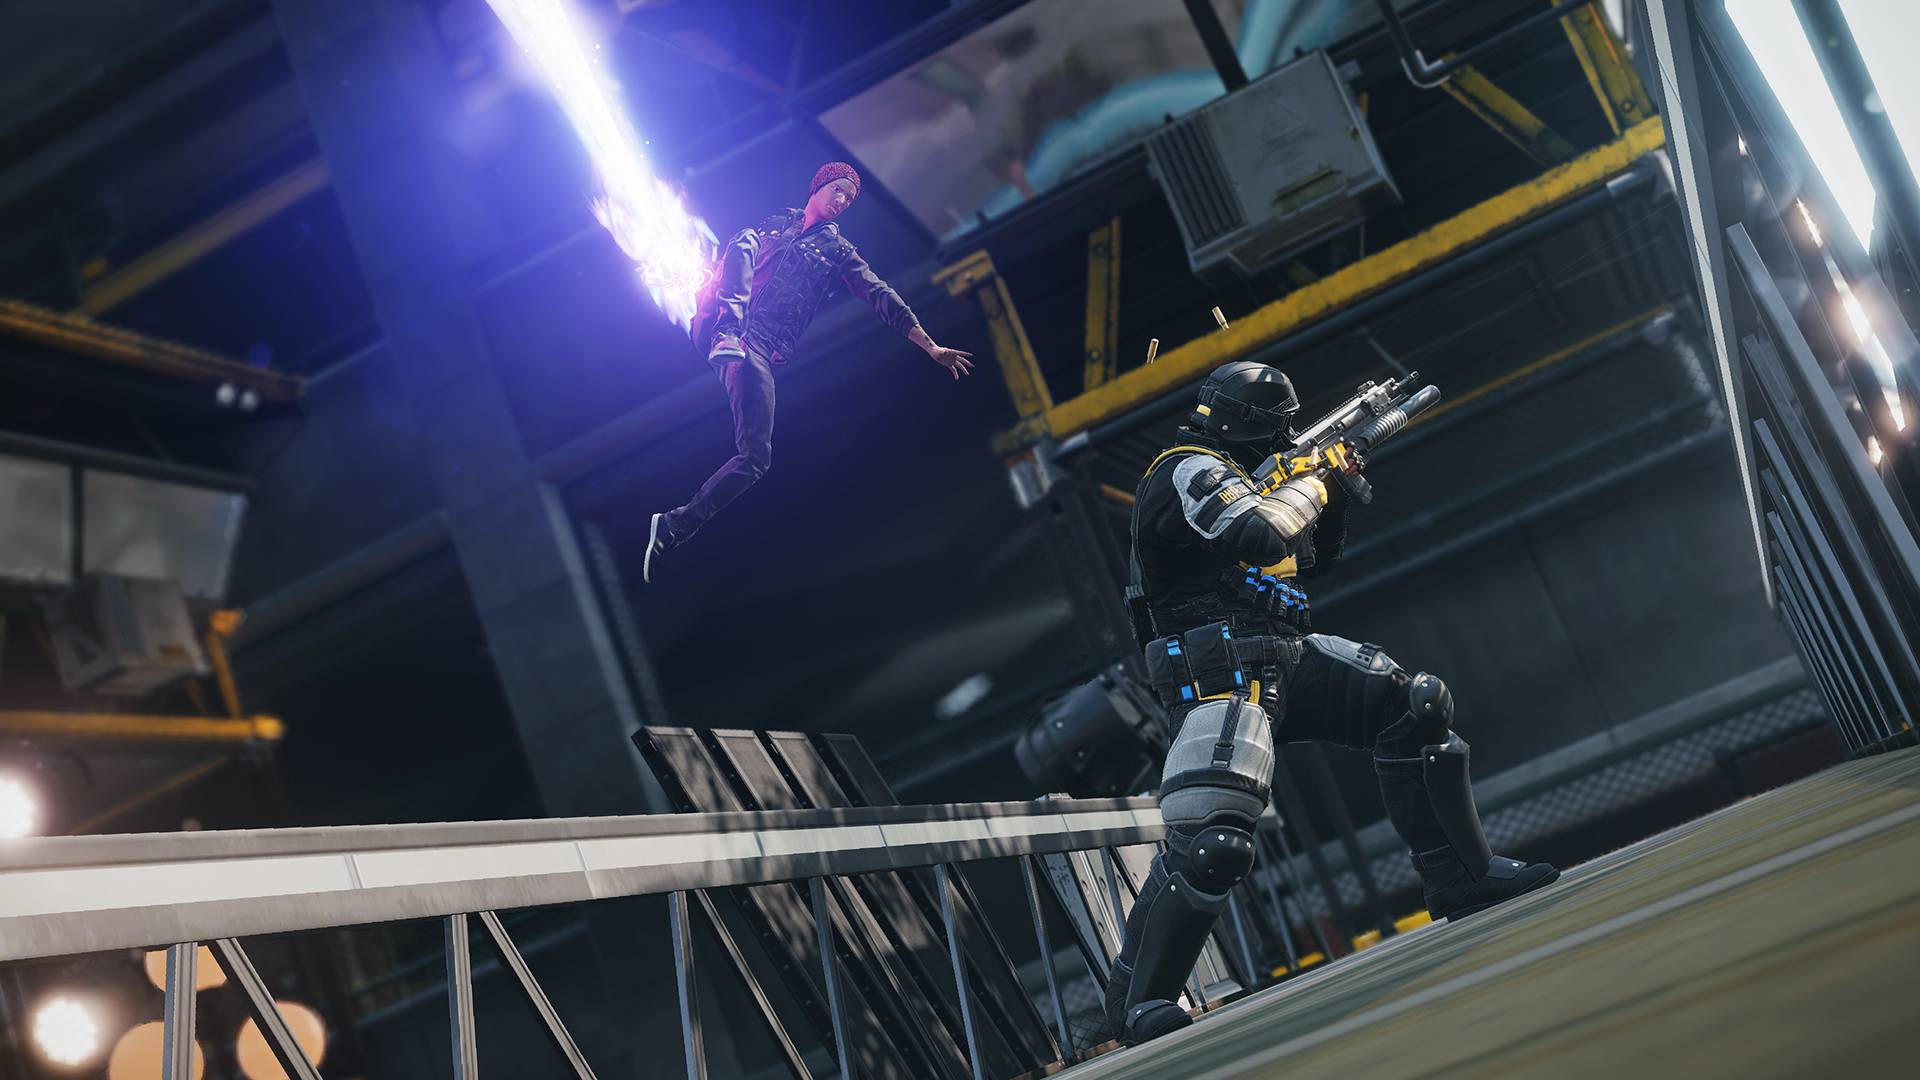 Infamous-Second-Son-Gets-New-Screenshots-Showing-Off-Neon-Powers-403510-5.jpg - inFamous: Second Son